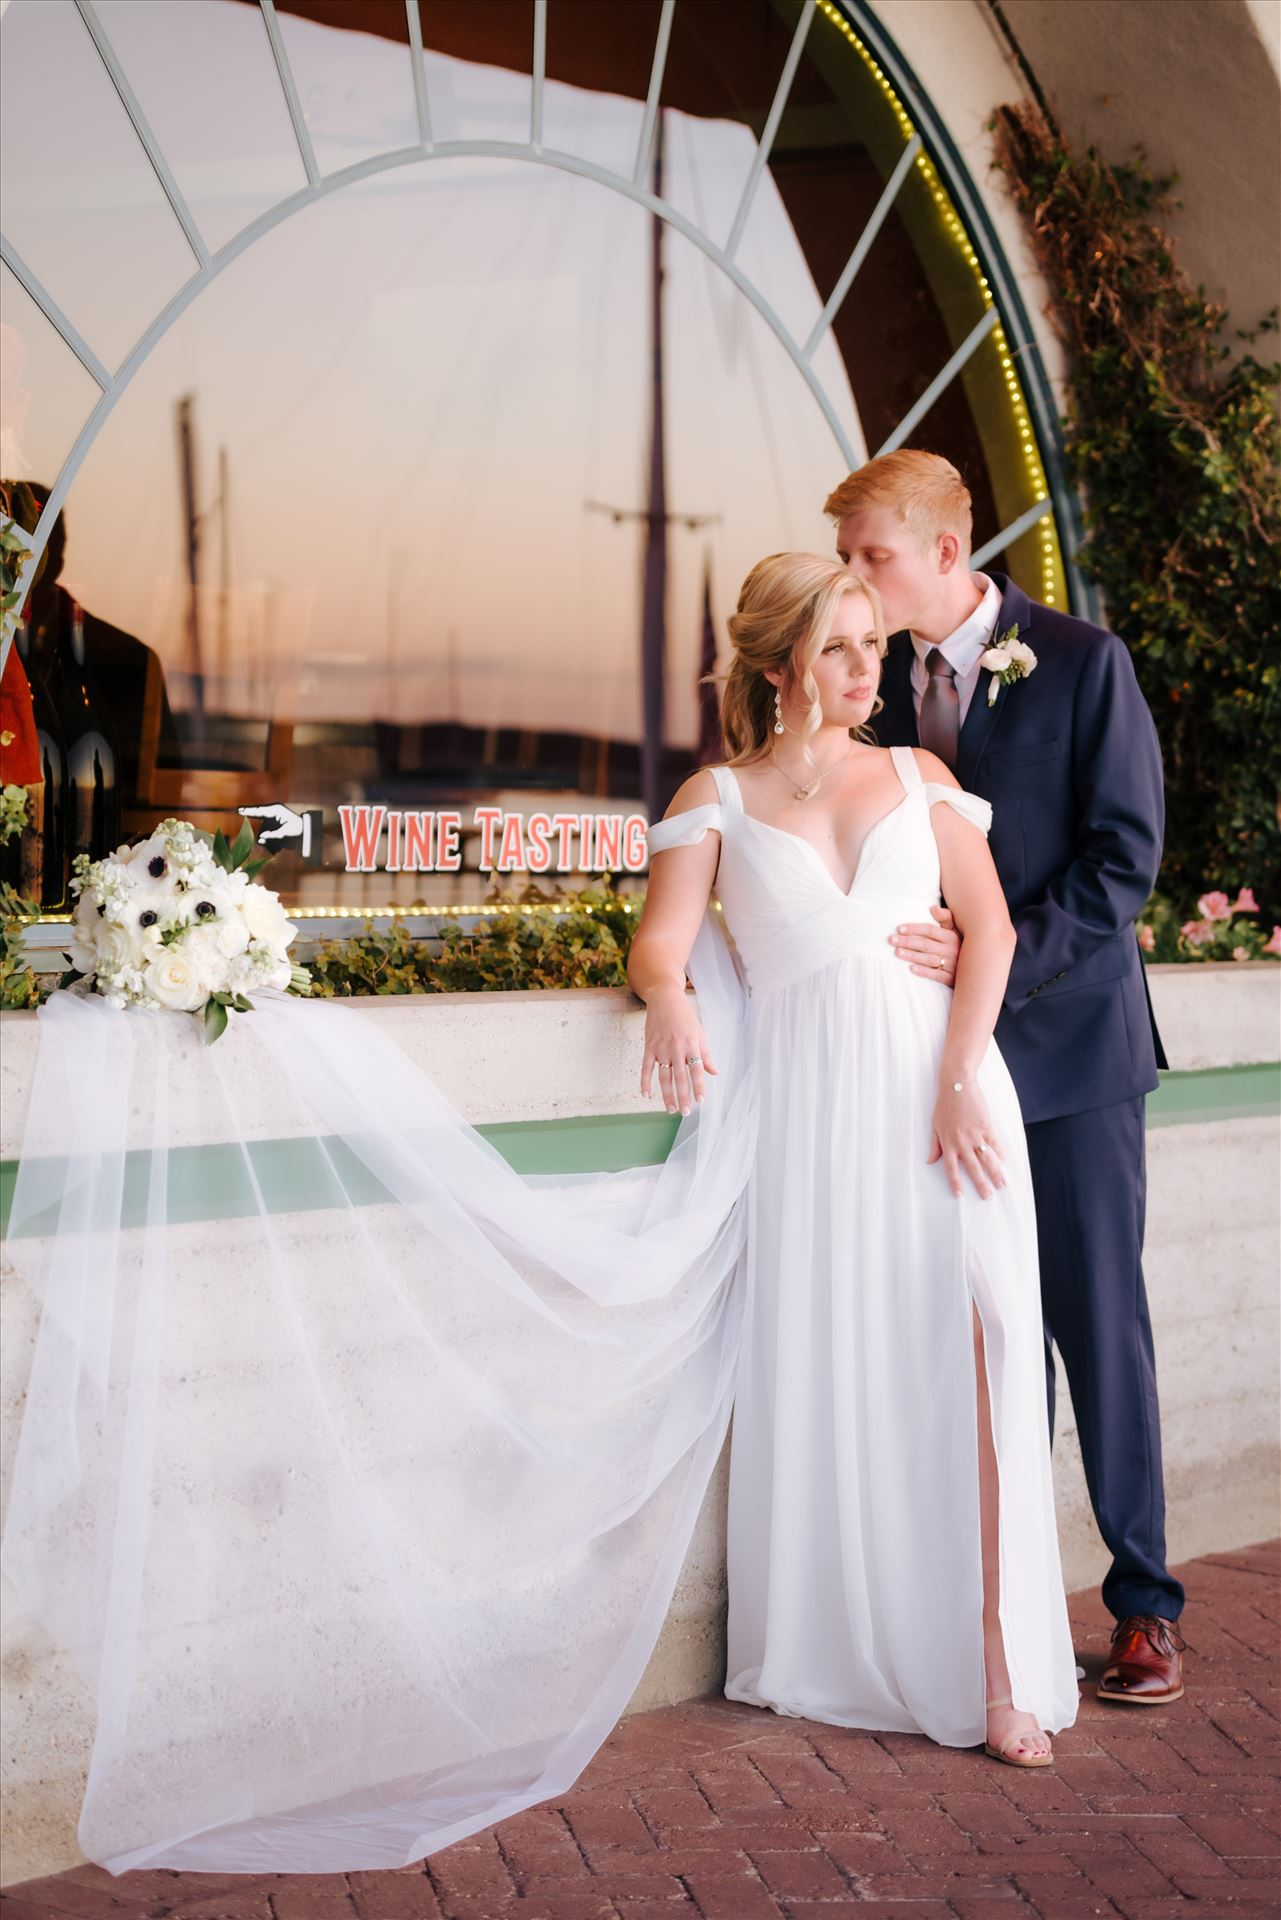 FW-8520.JPG Sarah Williams of Mirror's Edge Photography, a San Luis Obispo Wedding and Engagement Photographer, captures Ryan and Joanna's wedding at the iconic Windows on the Water Restaurant in Morro Bay, California.  Bride and Groom at sunset by Sarah Williams